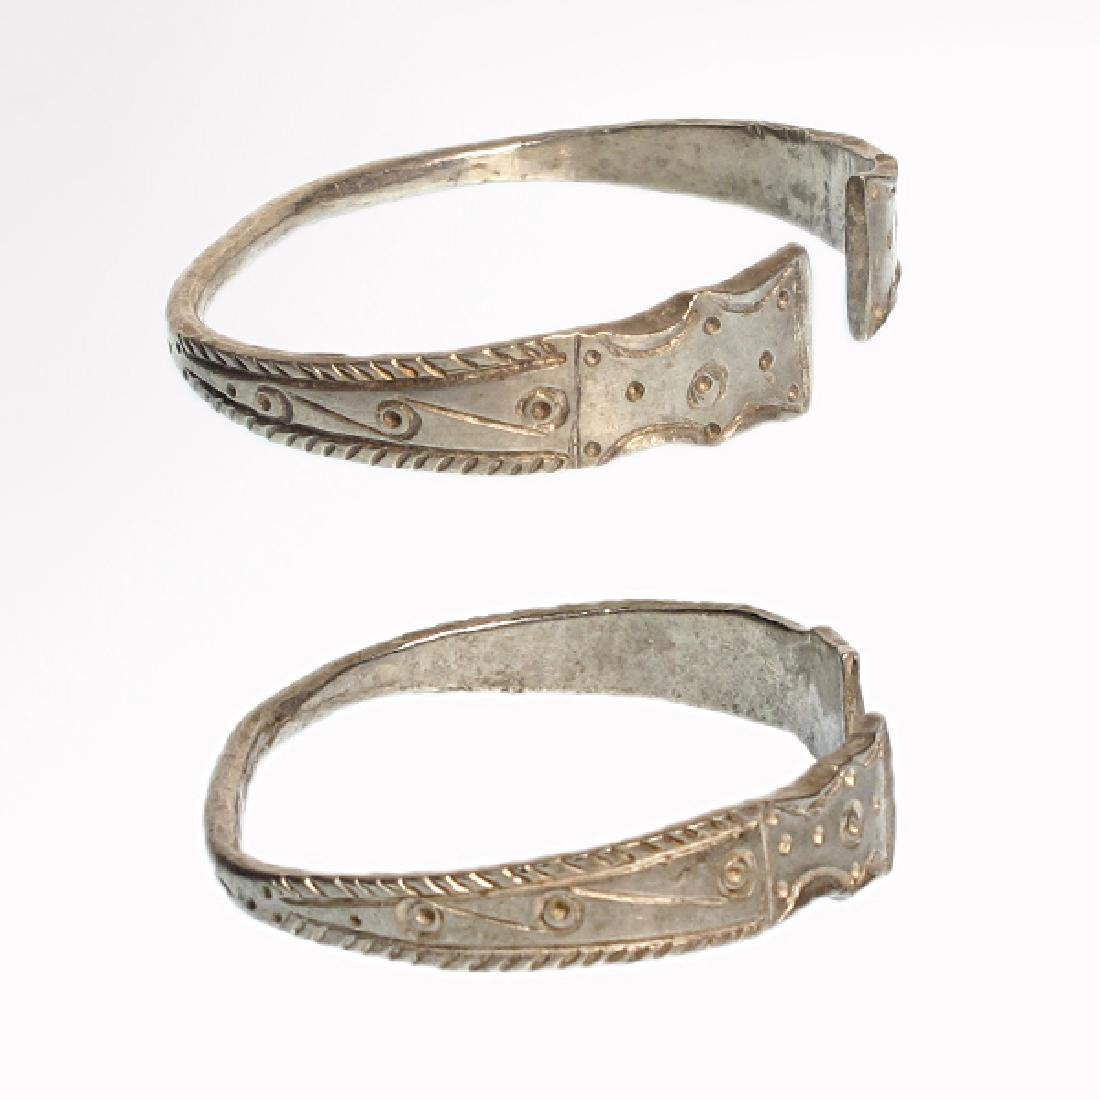 Pair of Celtic Silver Bracelets, Iron Age - 5